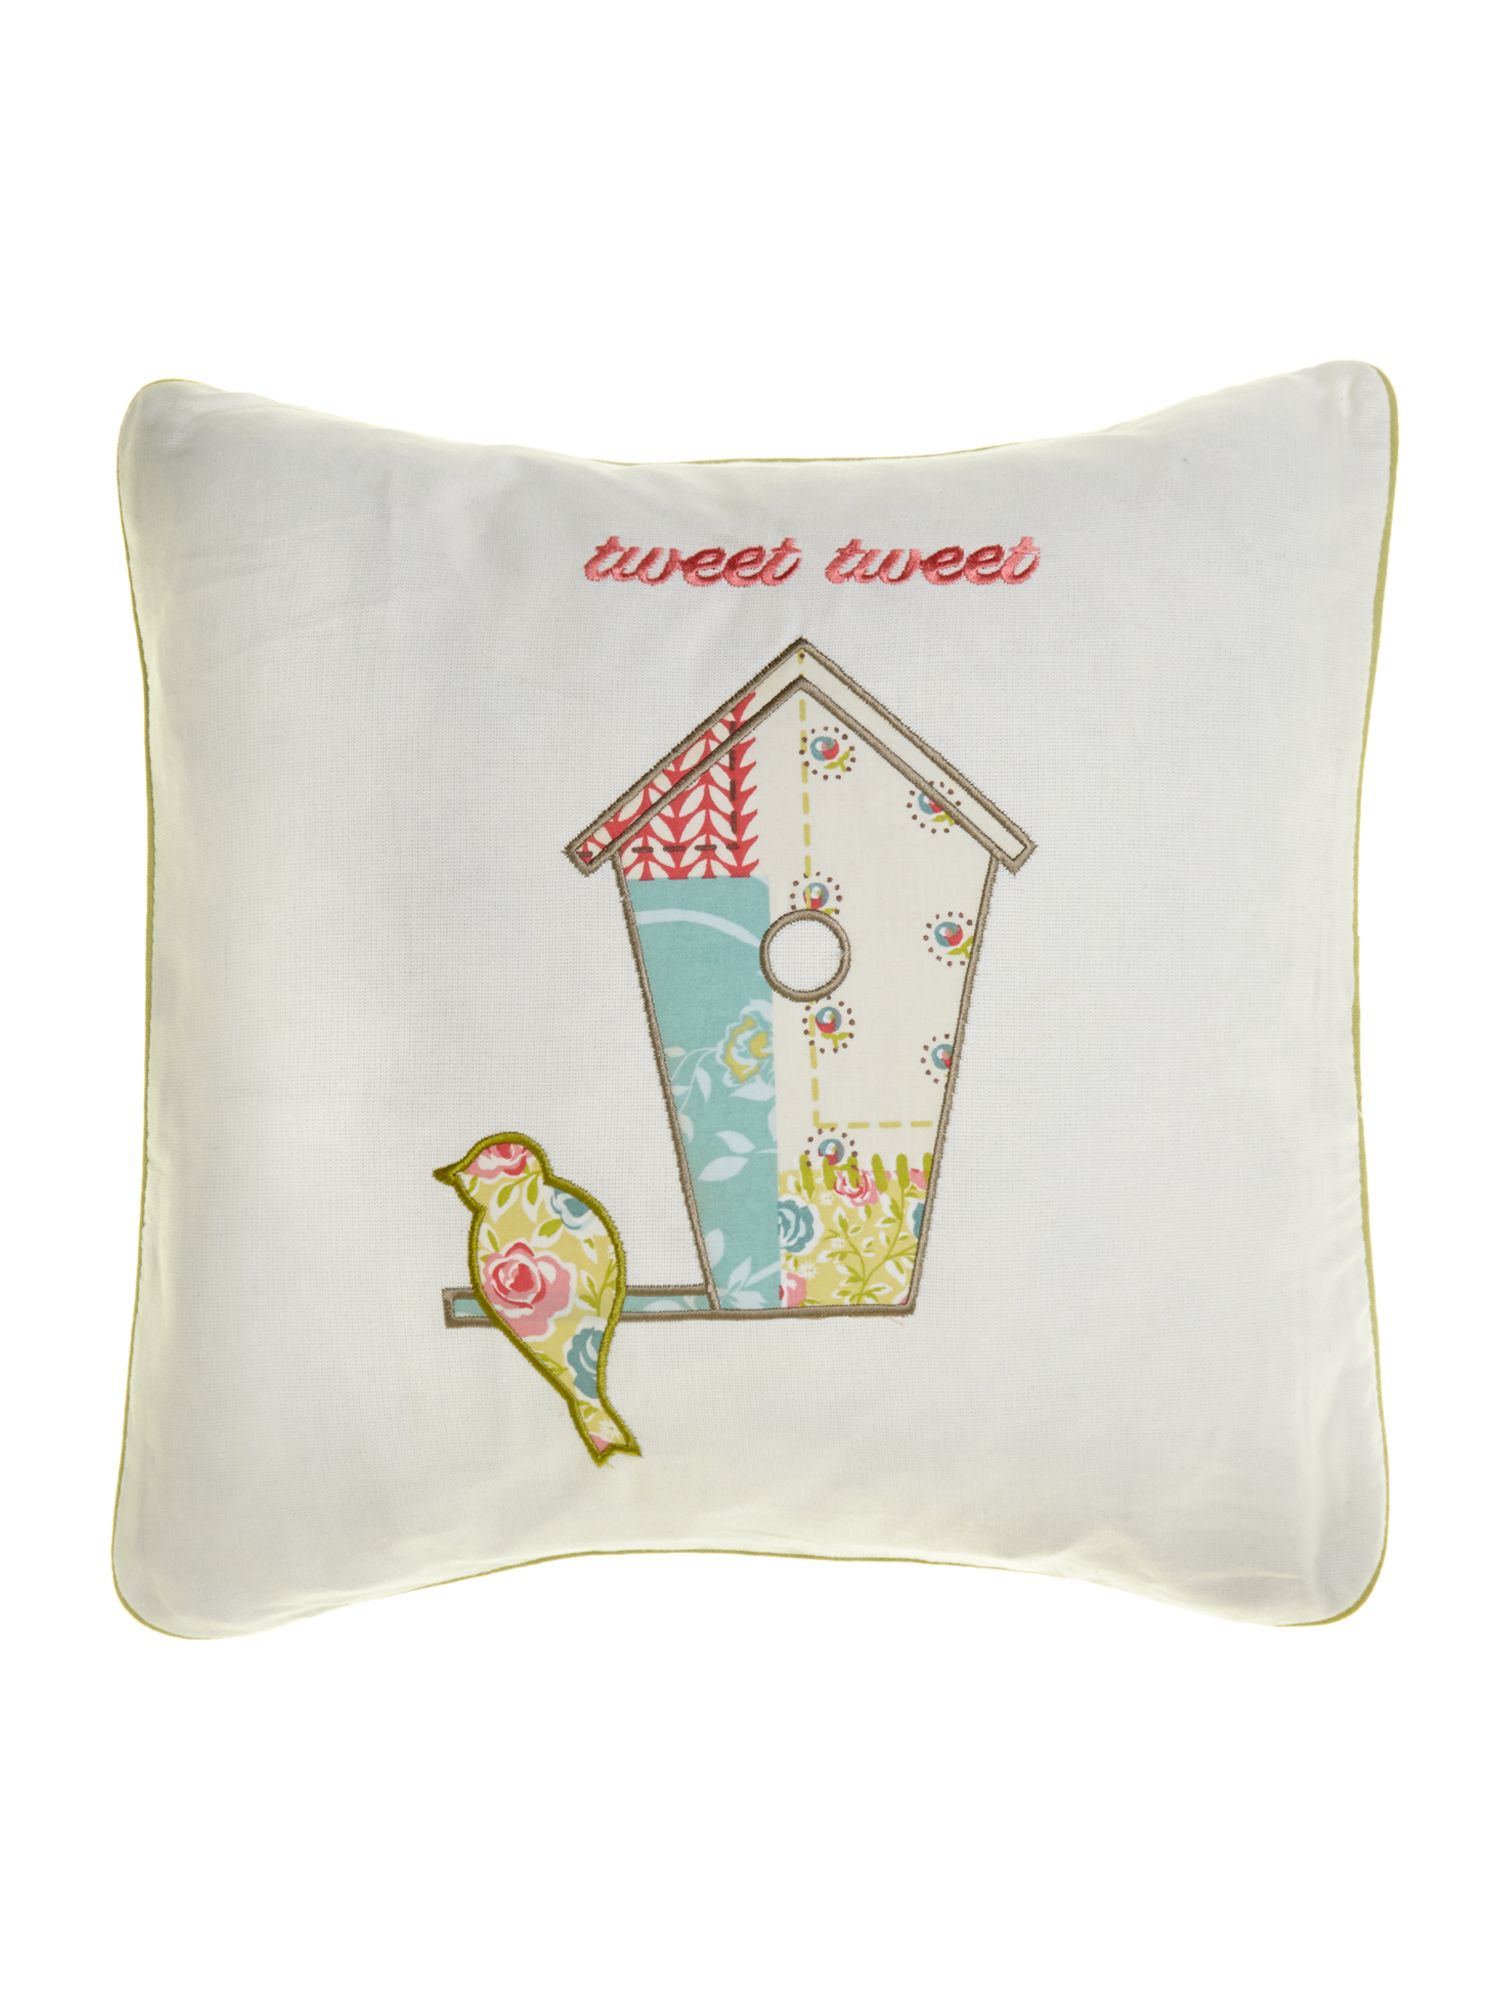 Tweet Spring cushion